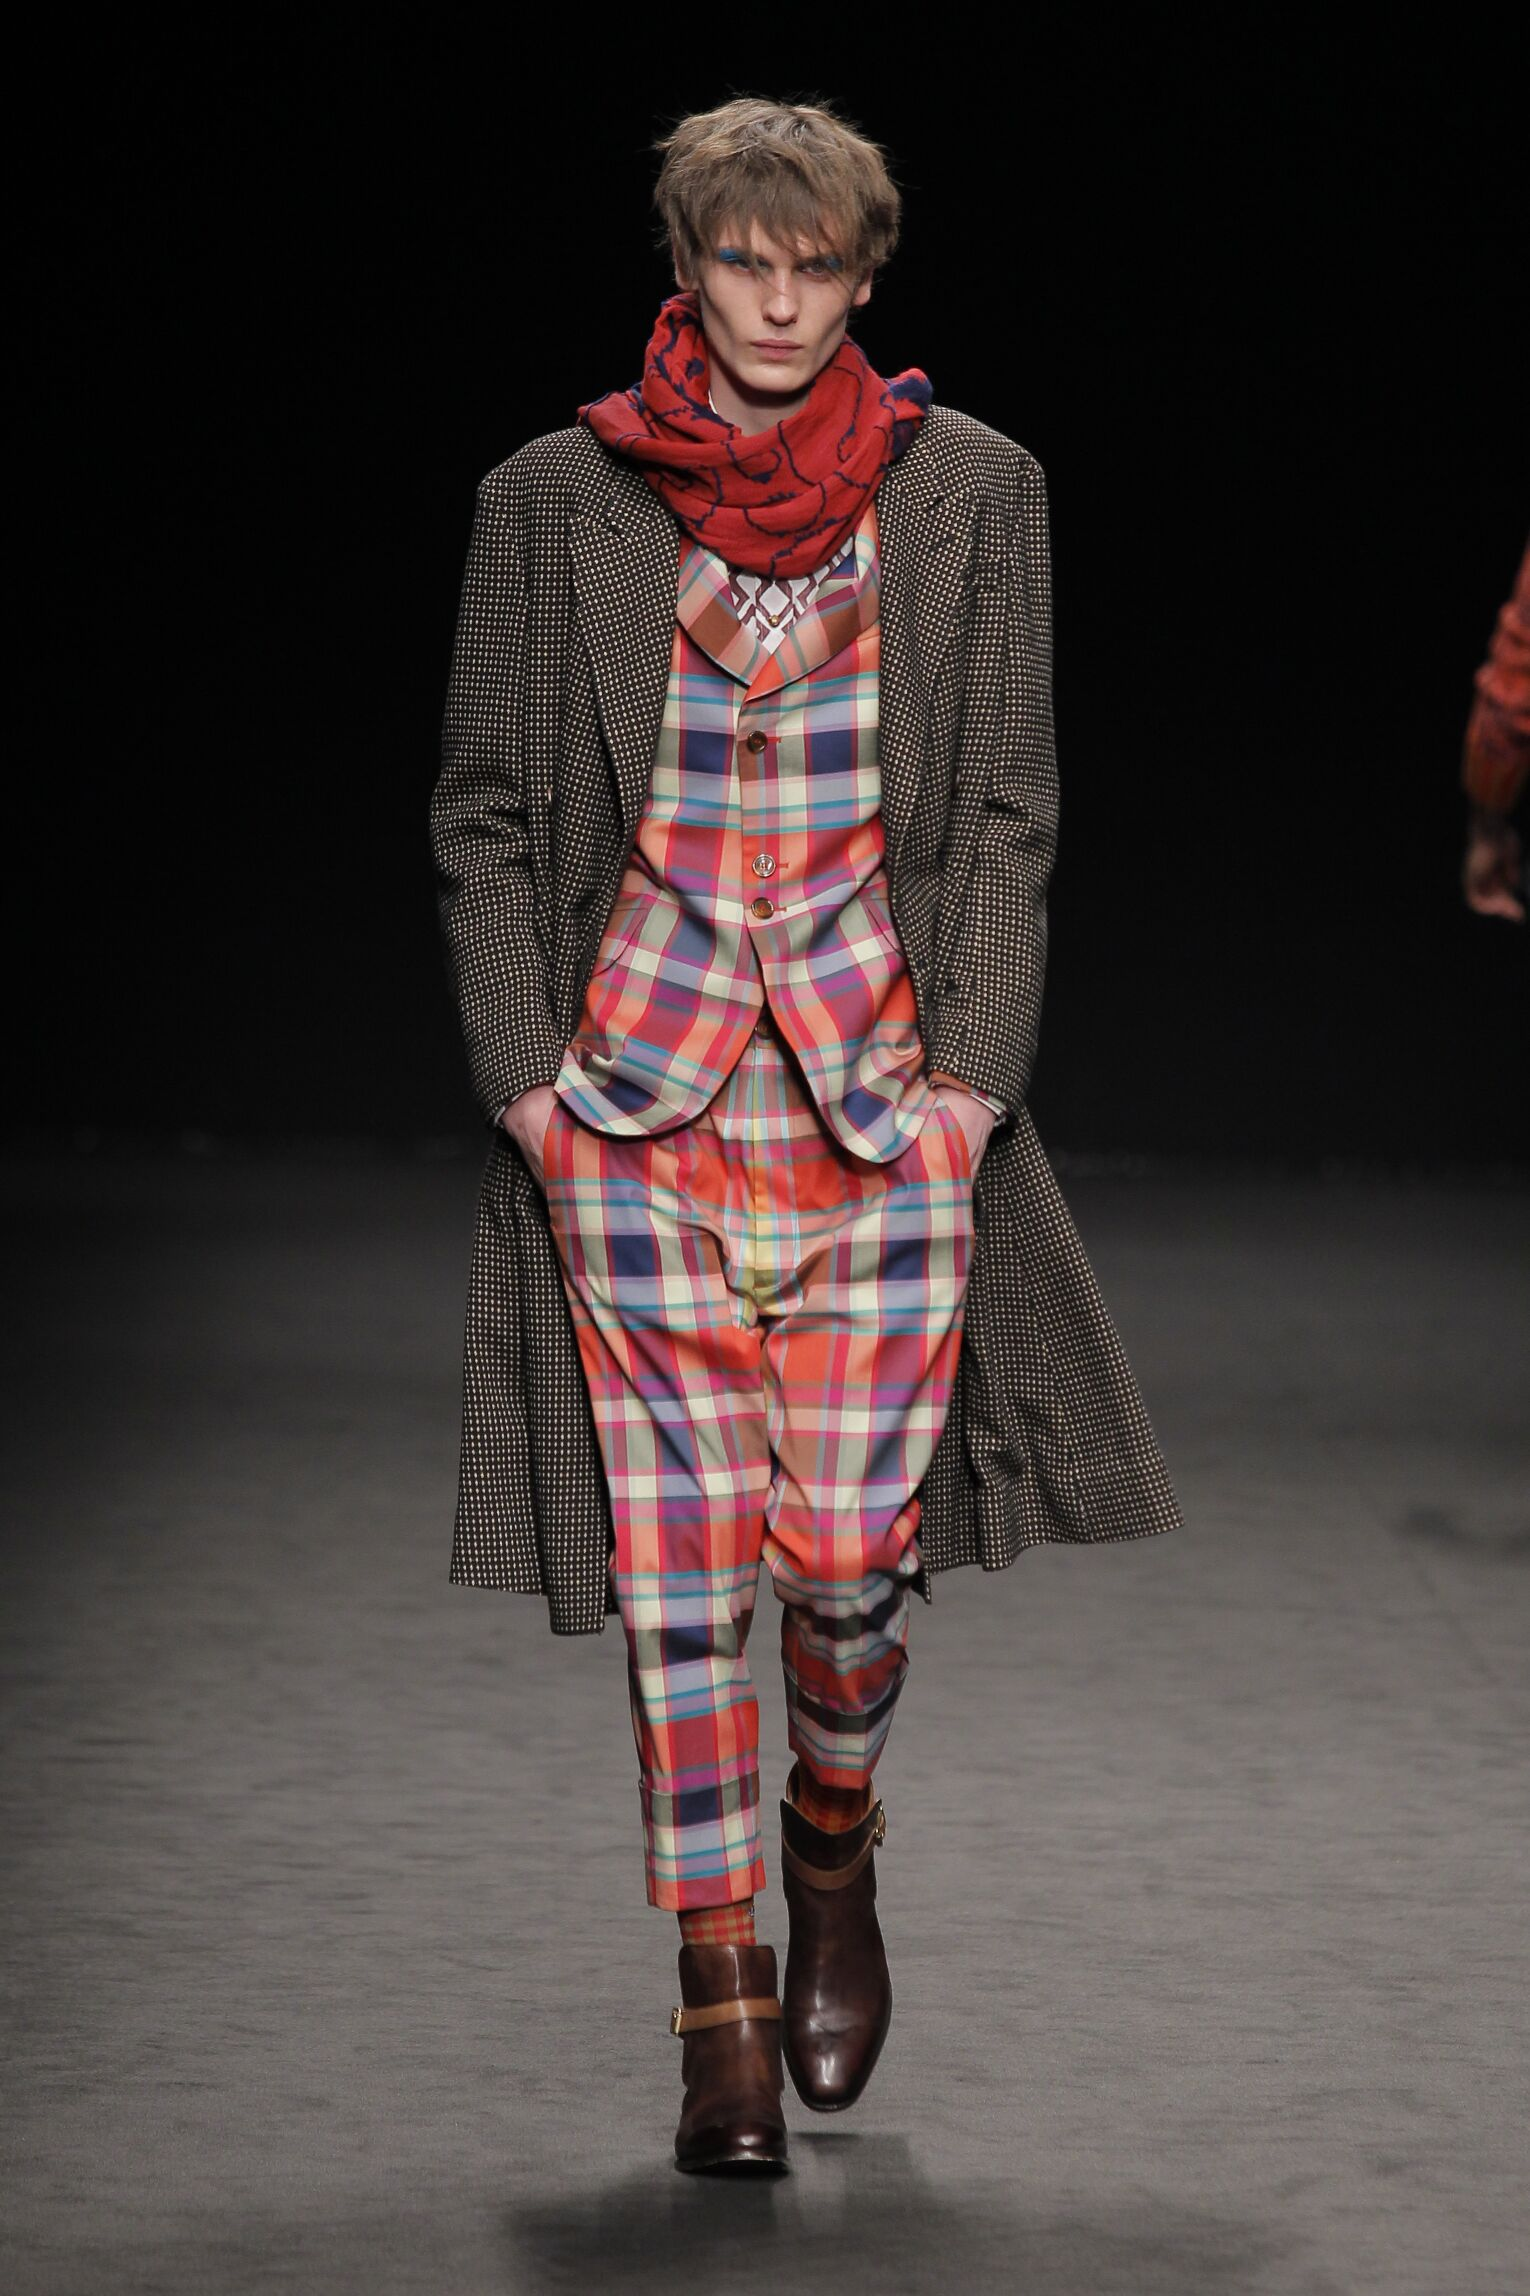 Catwalk Vivienne Westwood Man Fashion Show Winter 2016